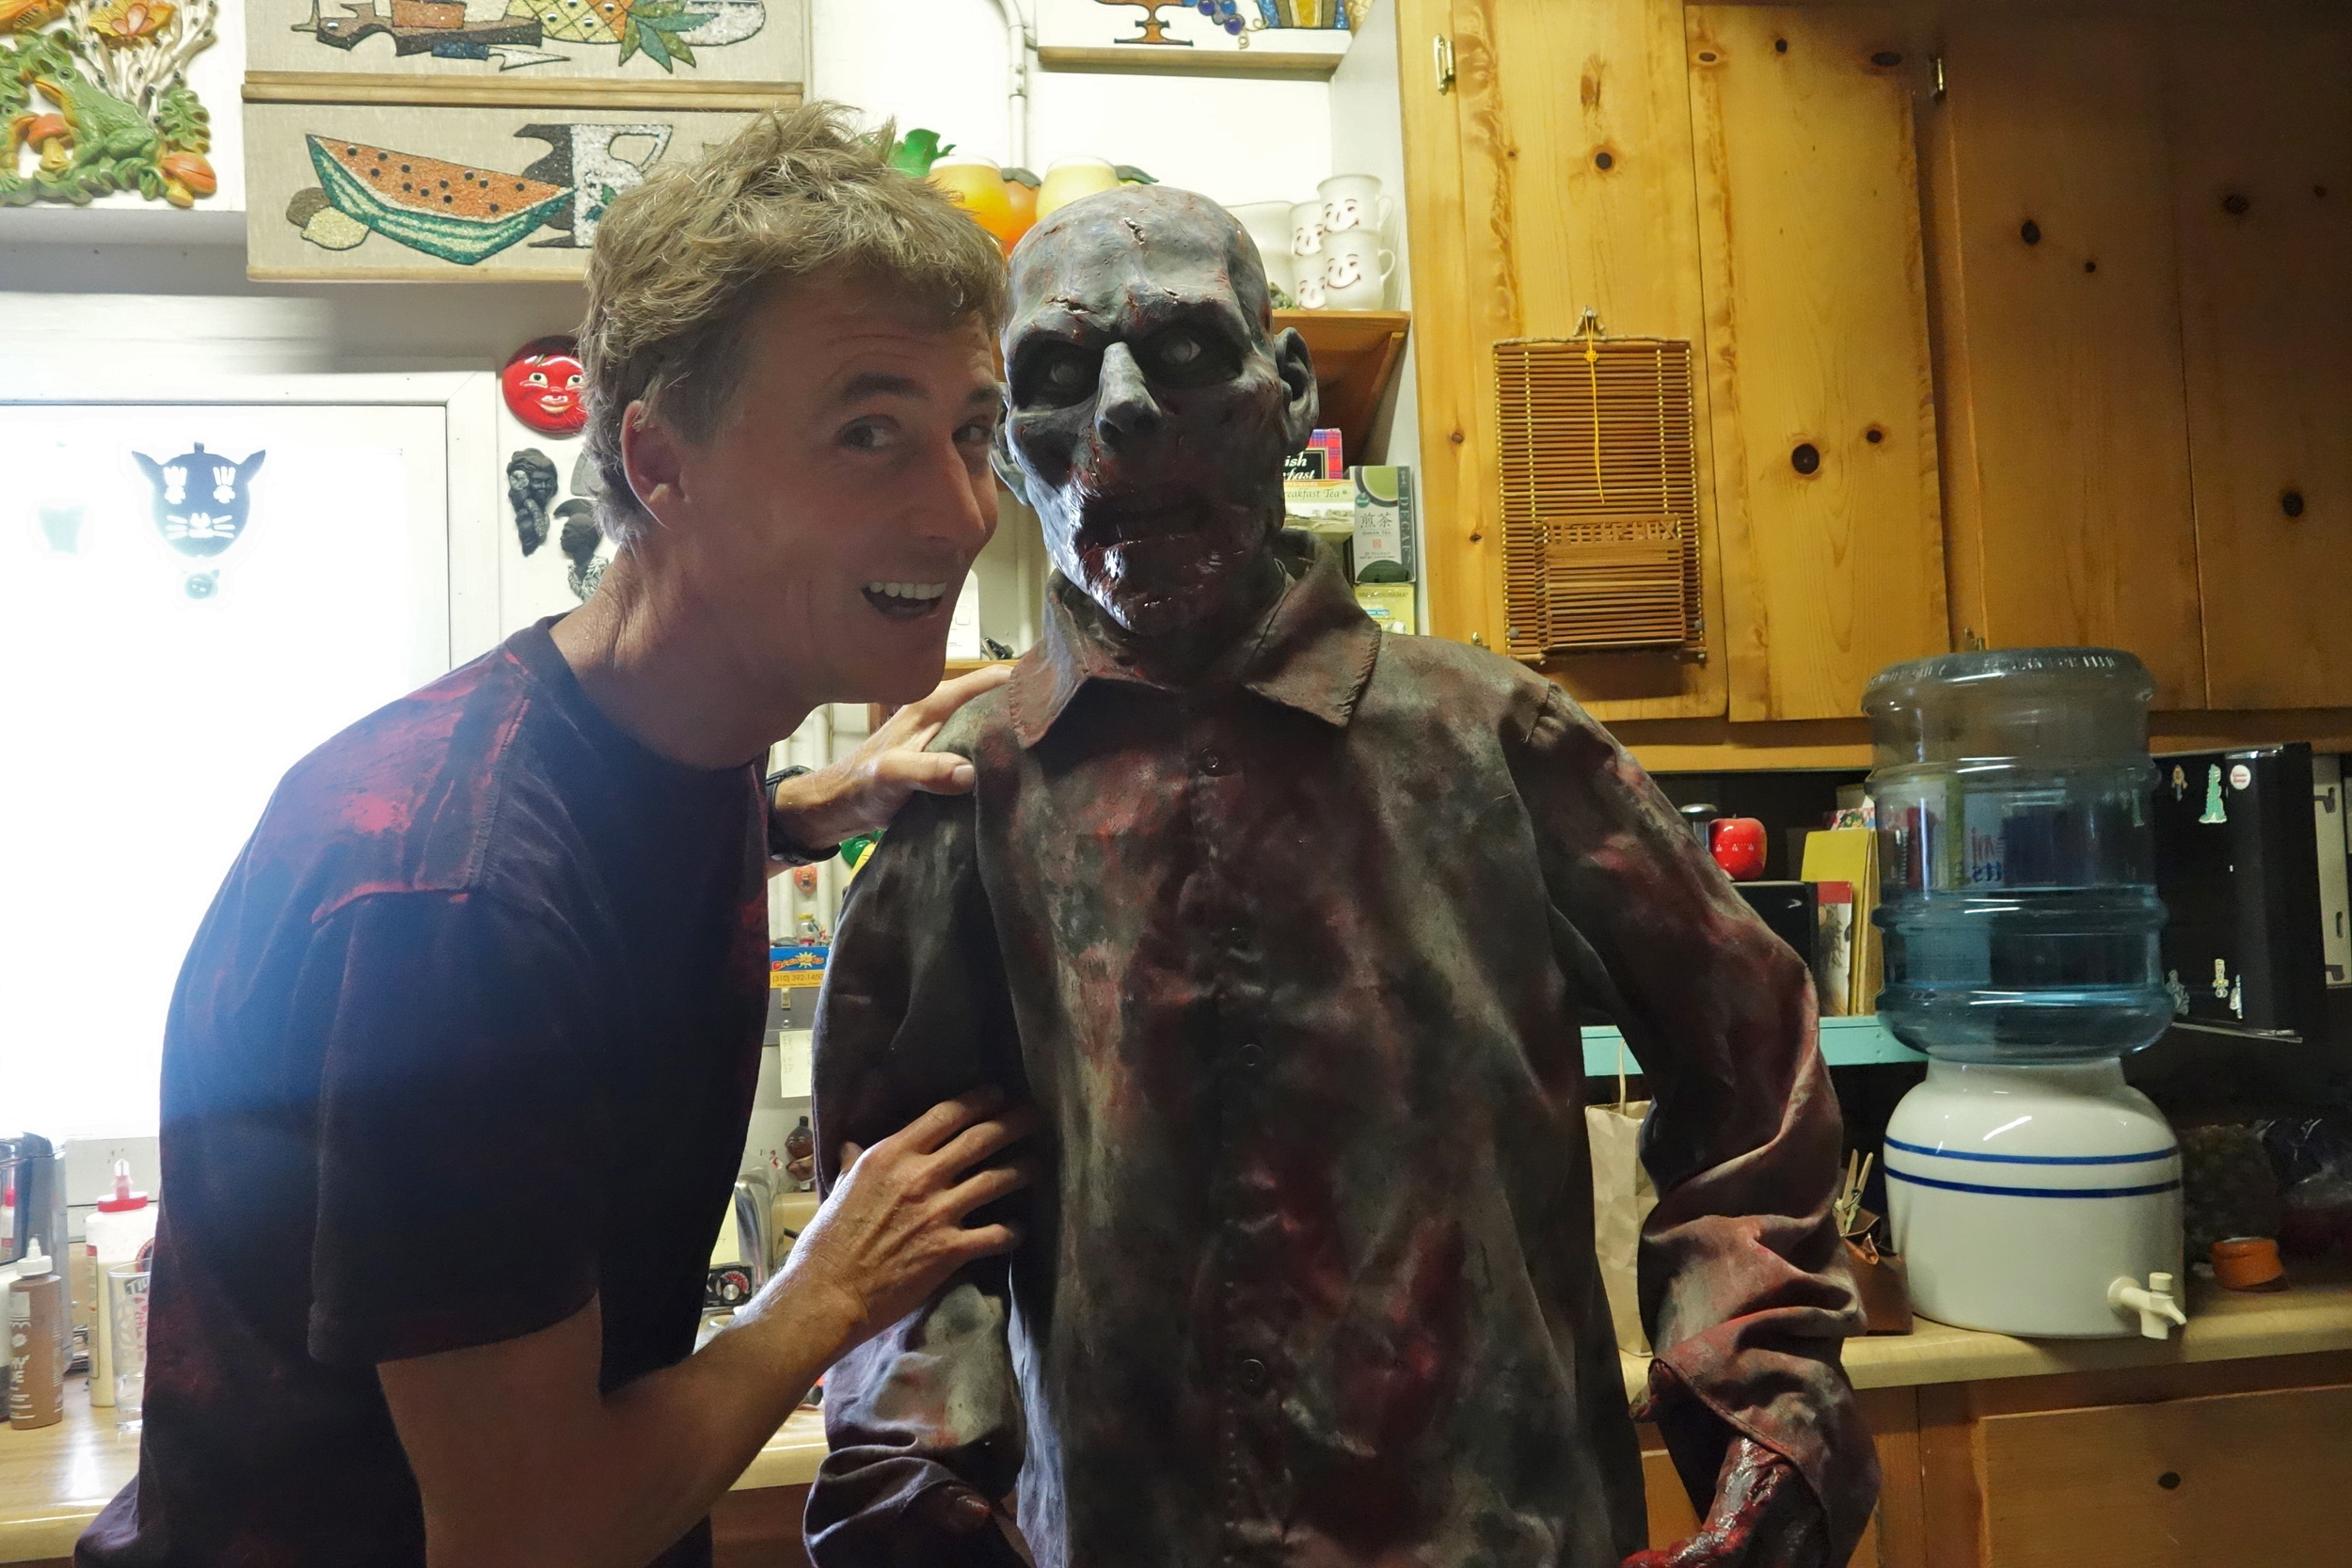 Steve Rose at home with a zombie in the kitchen.